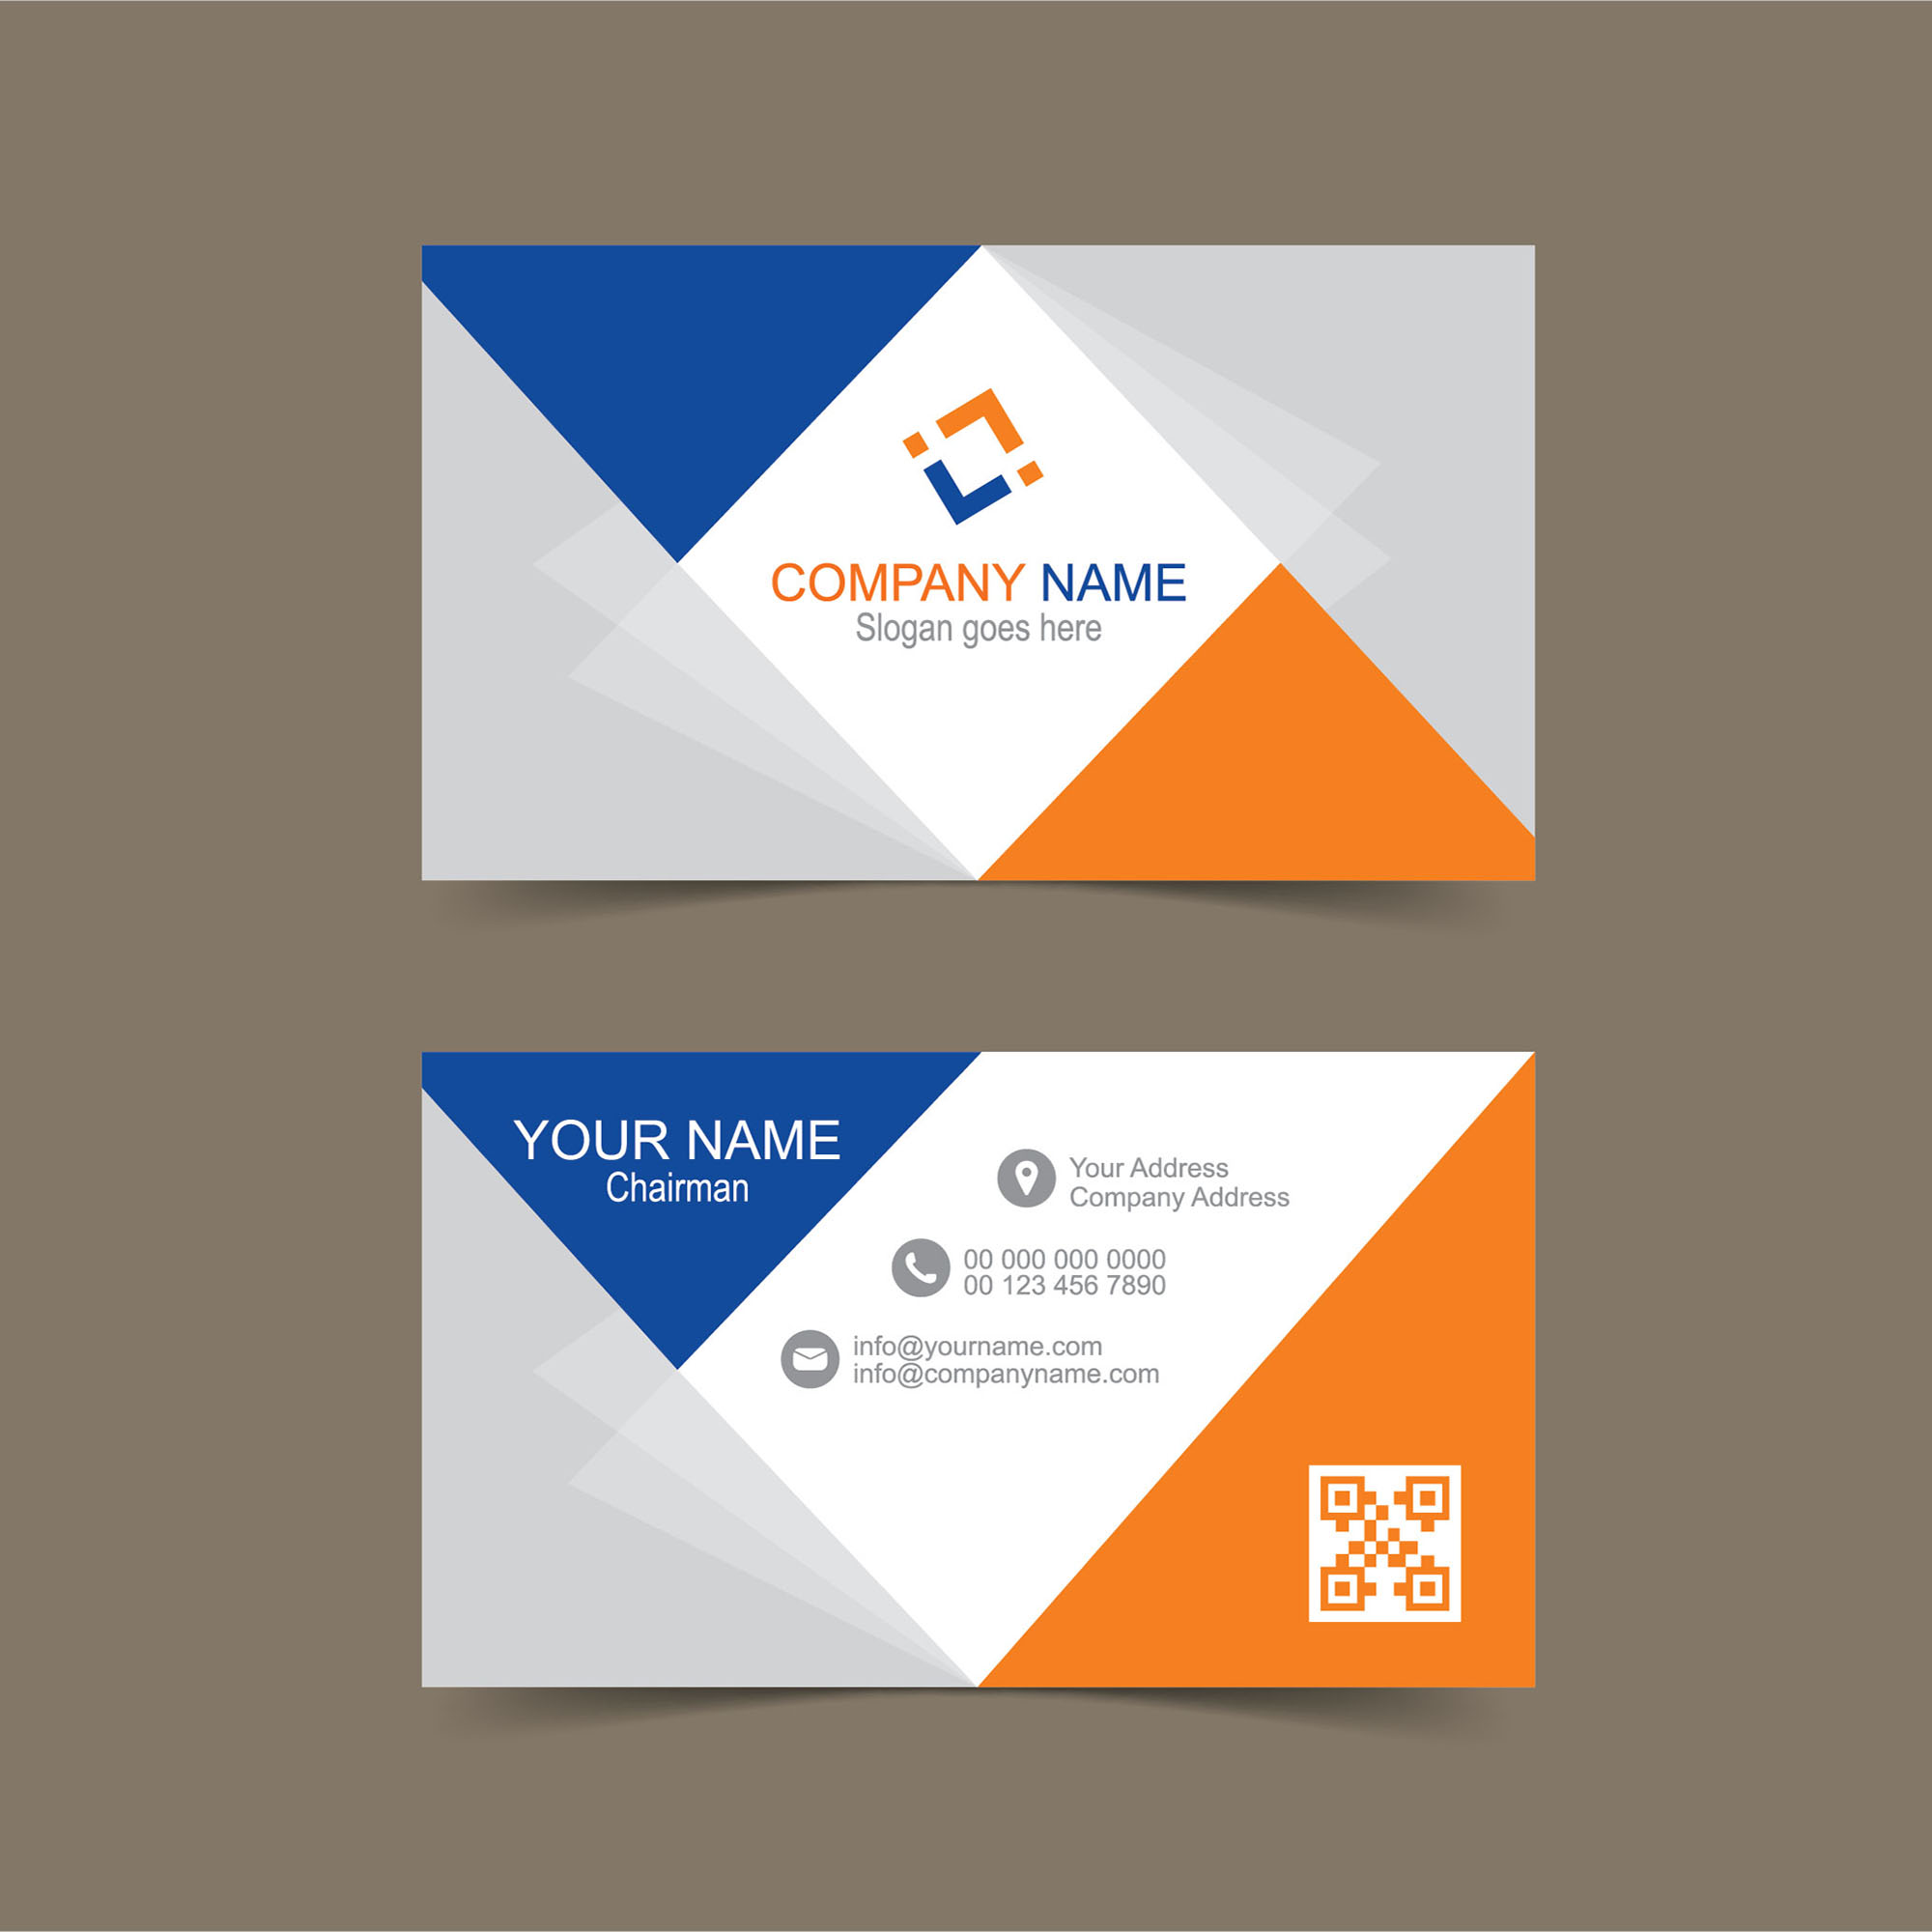 Free business card template for illustrator wisxi business card business cards business card design business card template design templates cheaphphosting